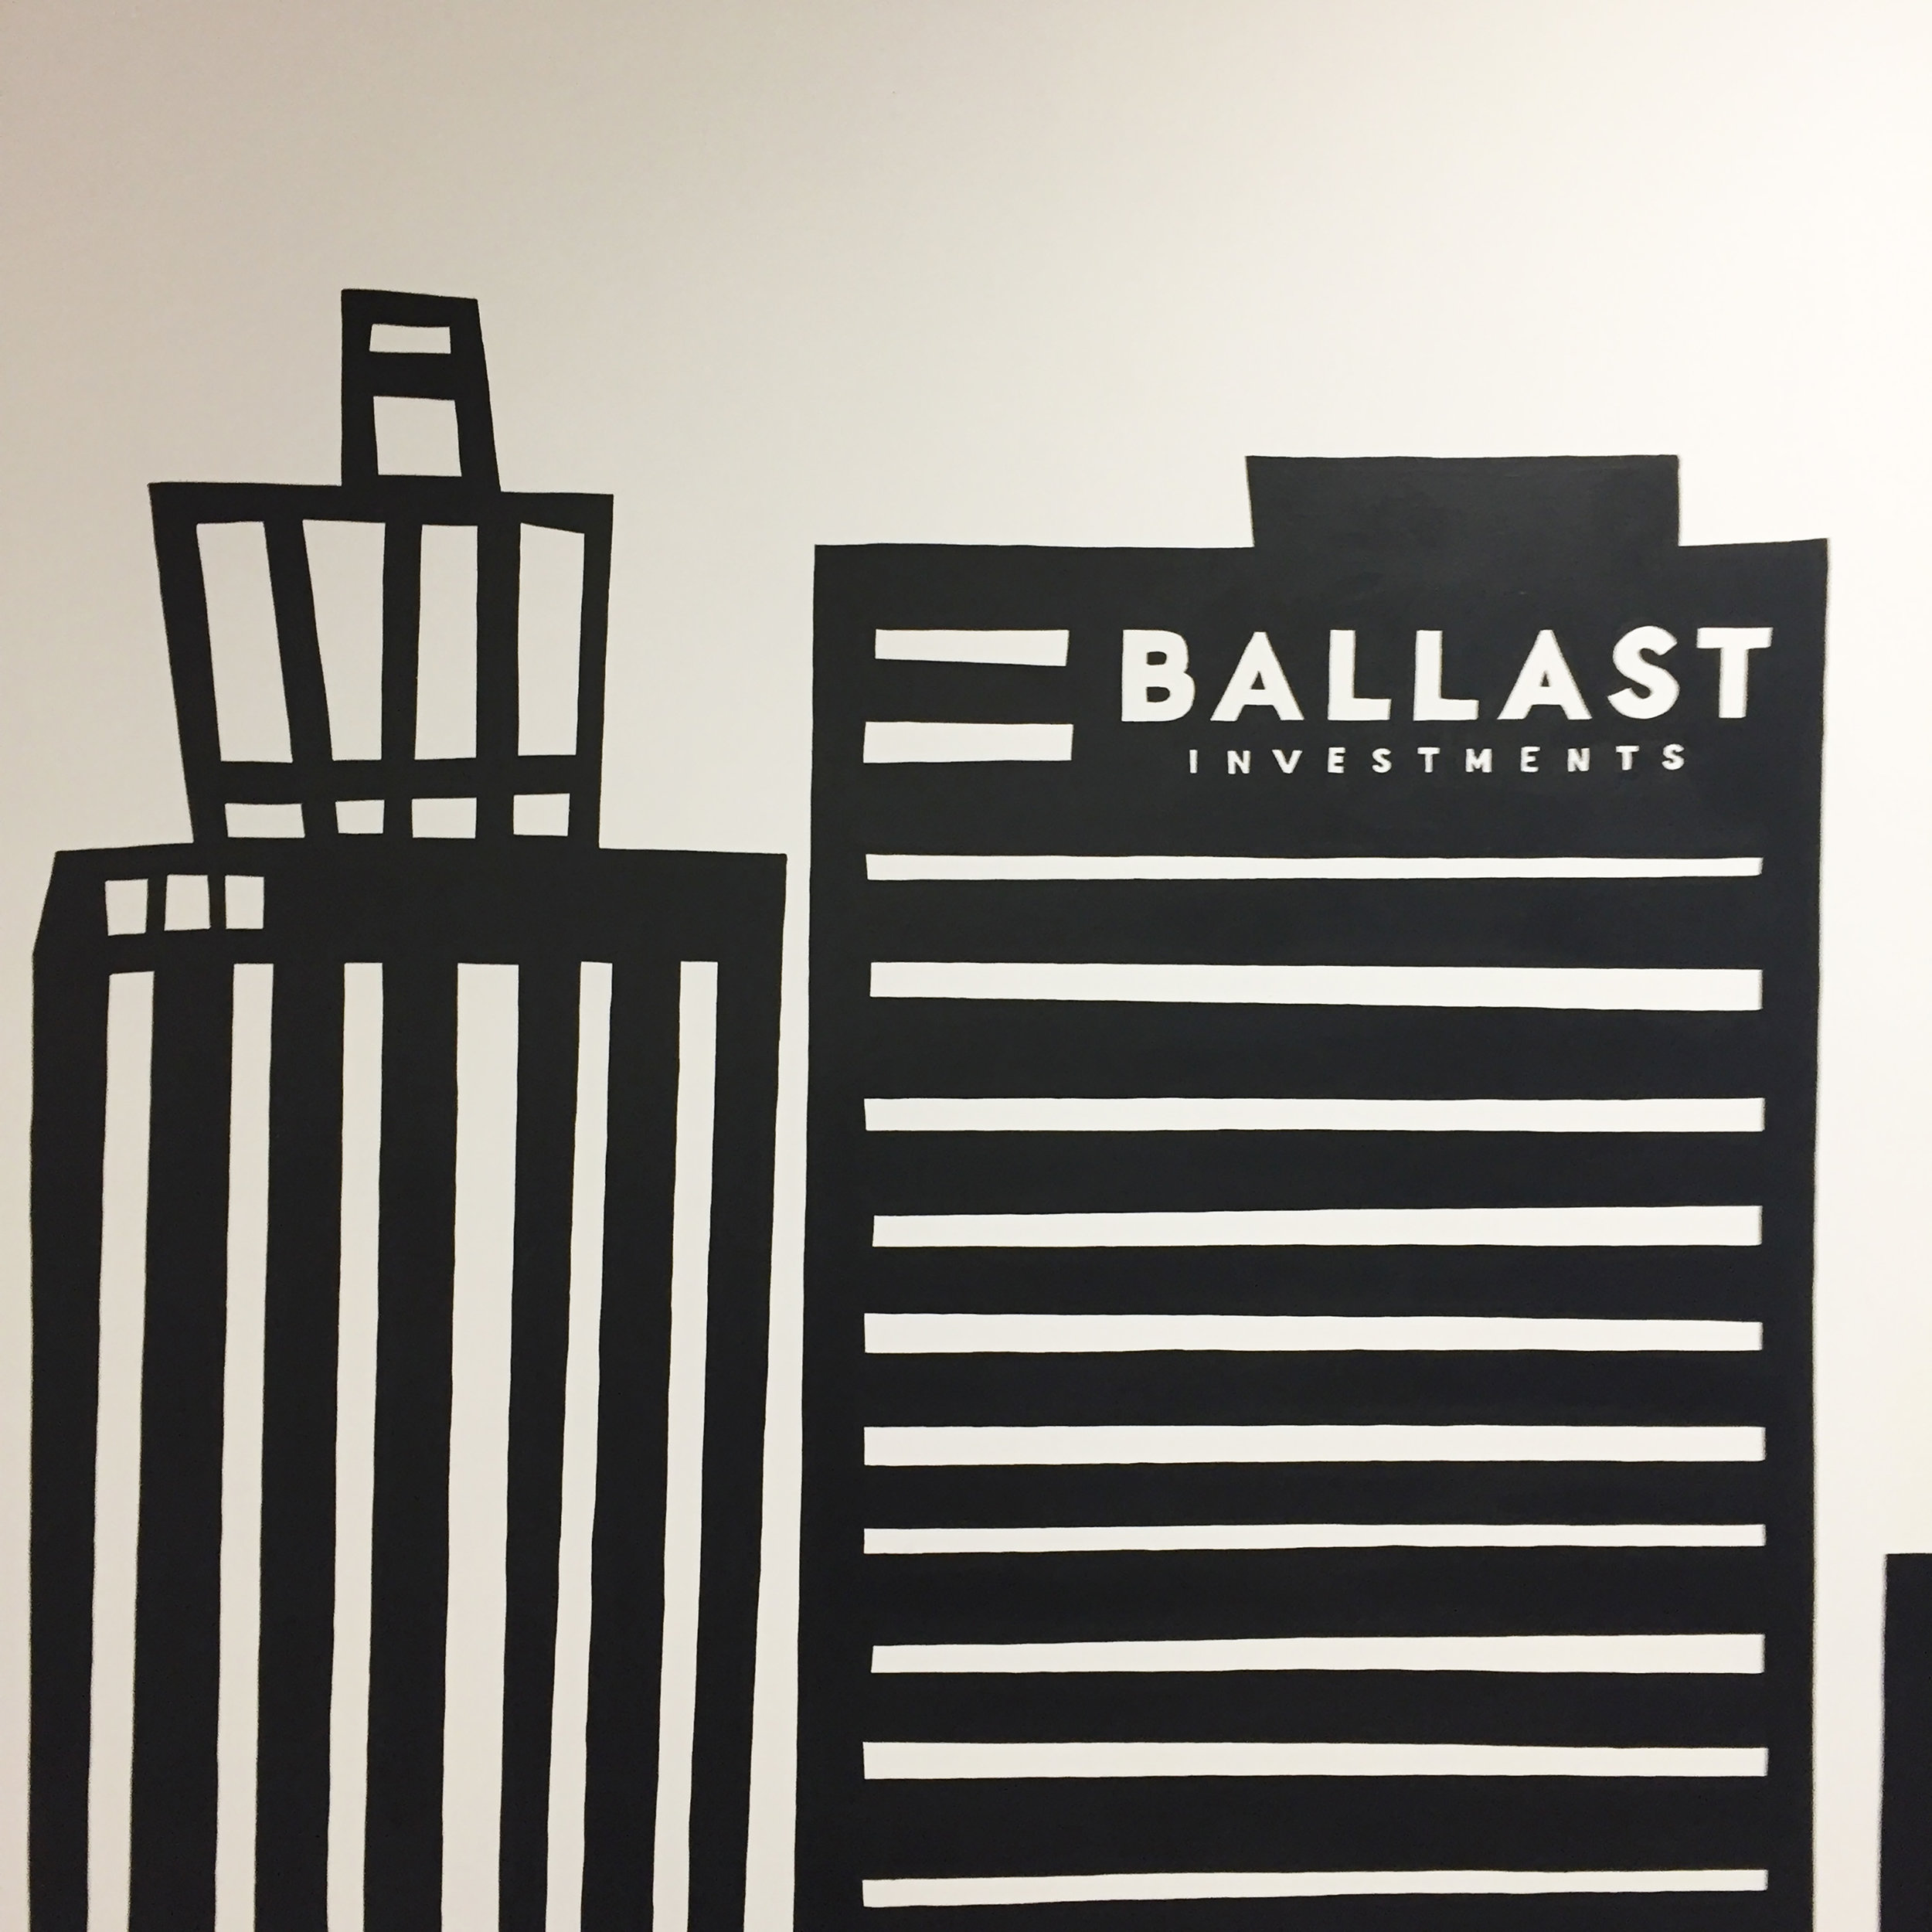 Office-commercial-mural-san-francisco-ballast-wall-and-wall-mural-company_004.jpeg